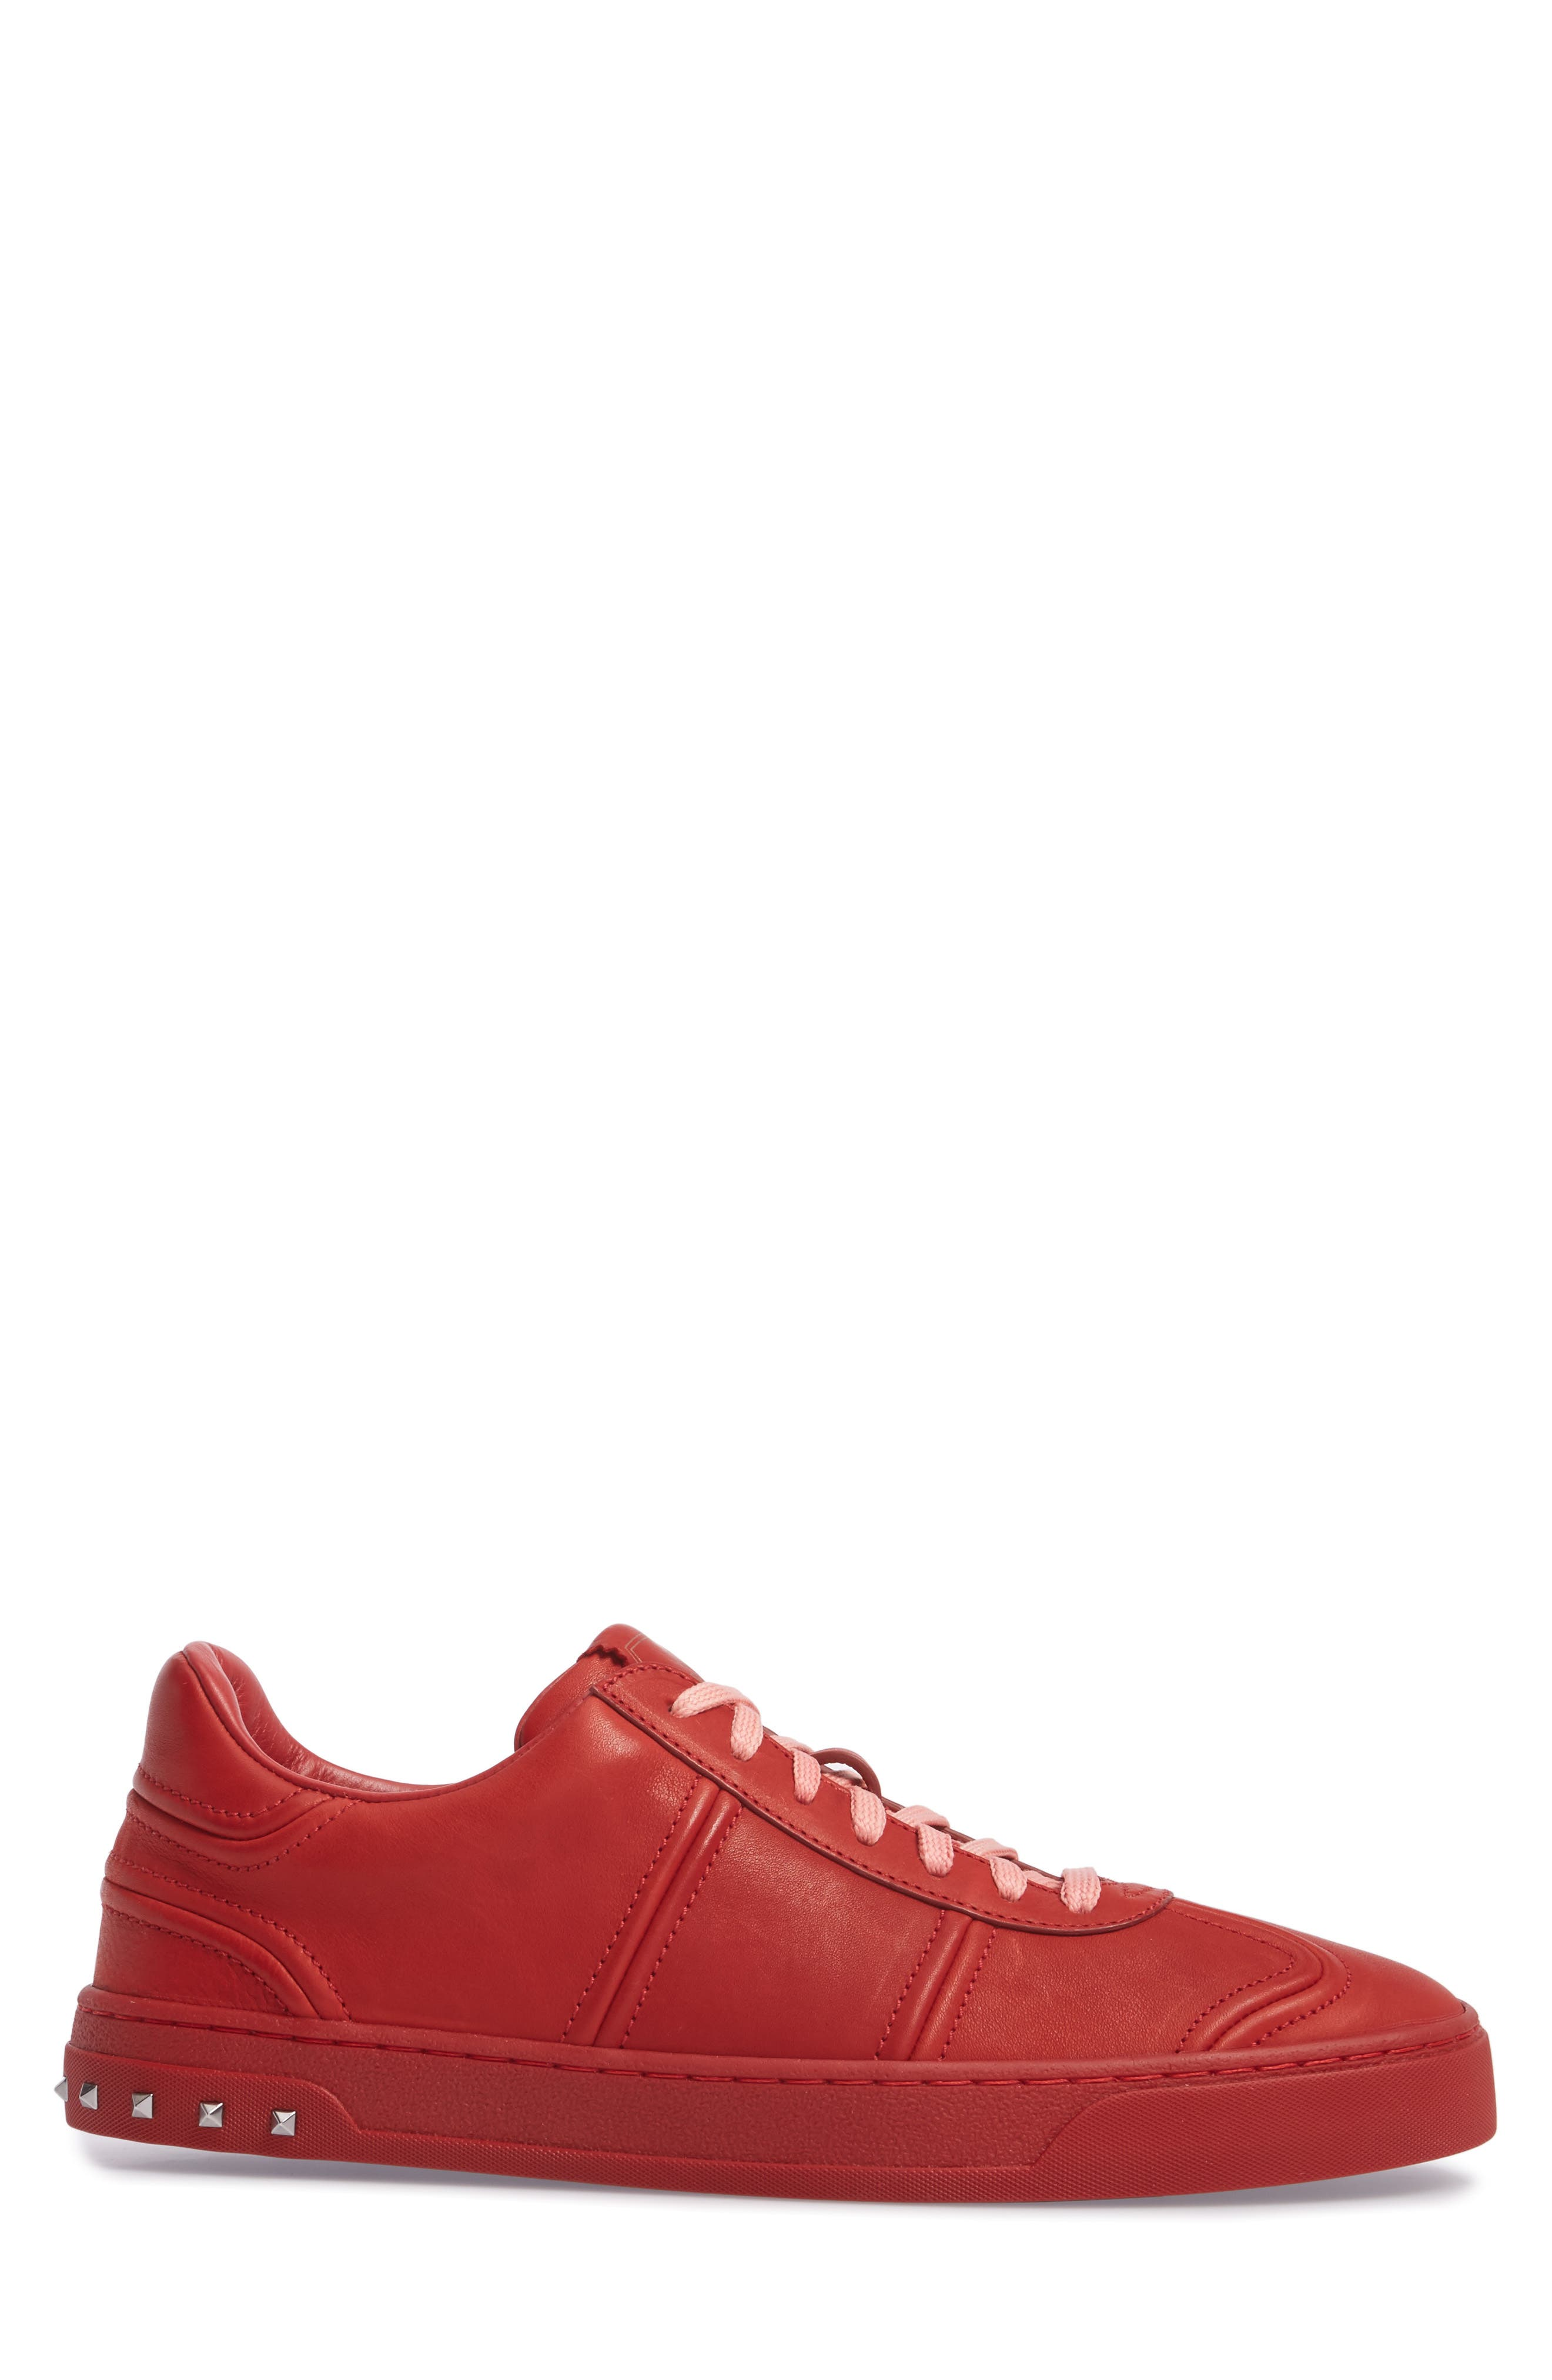 Fly Crew Sneaker,                             Alternate thumbnail 3, color,                             Rosso